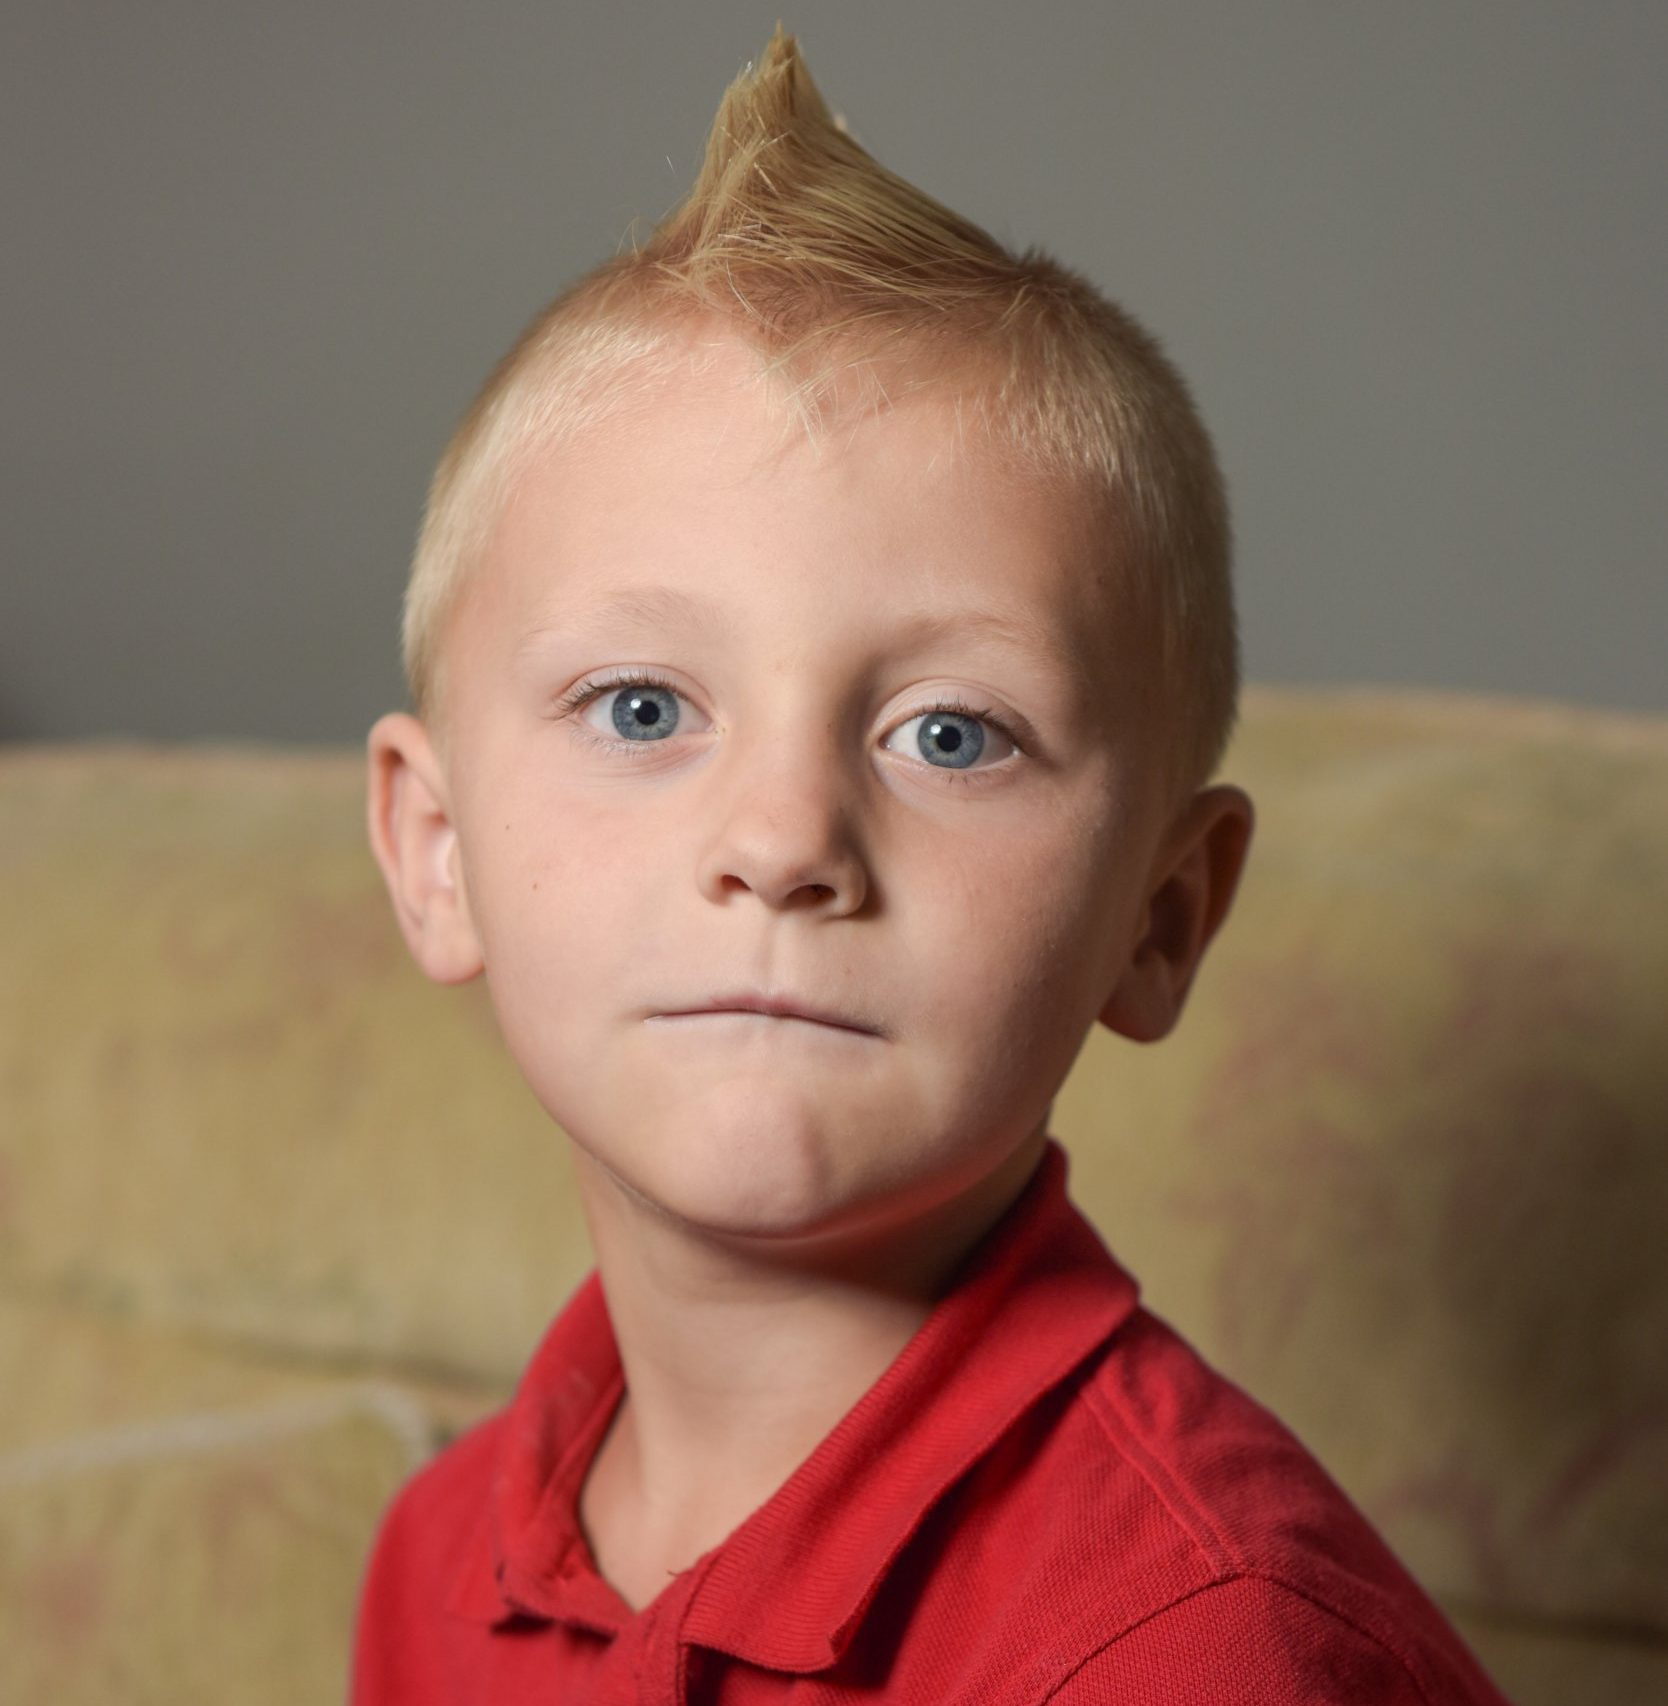 Pic by Michael Scott/Caters News - (PICTURED: Charlie Chafer, 6 from Milton Keynes has been told that he is unable to go to school due to his mohawk hair style that might poke someones eye out. Pic taken 12/09/2018) - A furious mum claims her son was banned from school over his 4cm long mohawk because it could poke another child in the eye. Little Charlie Chafer, six, chose the punk hairstyle himself a month ago before starting back at Drayton Park Primary School in Bletchley, Milton Keynes, last week after the summer holidays. But mum Kirstie Lea Day, 26, claims she was called by the school on Friday [September 7] and told her sons hairstyle was not acceptable and he would not be allowed in class until he changed it. Stay-at-home mum Kirstie, who is also mum to Demi-Lee, eight, and four-year-old Emily, alleges when she brought Charlie back to school this week, the headmaster told her she should shave her sons head or take him home. And she said another teachers eventual solution to allowing Charlie back into class was to pour water onto his hair to flatten it down. SEE CATERS COPY.